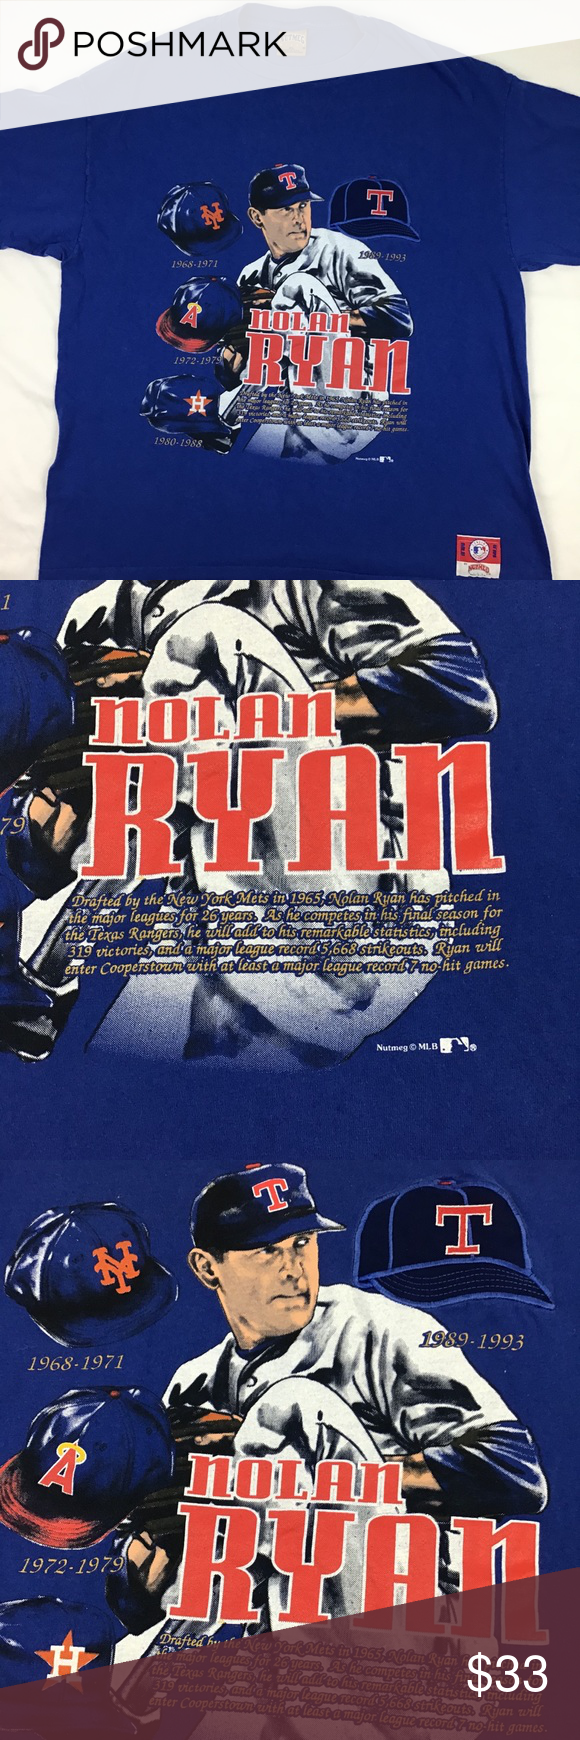 Vintage Nolan Ryan Baseball T Nolan Ryan Baseball Fan Gear Mens Baseball Tshirt